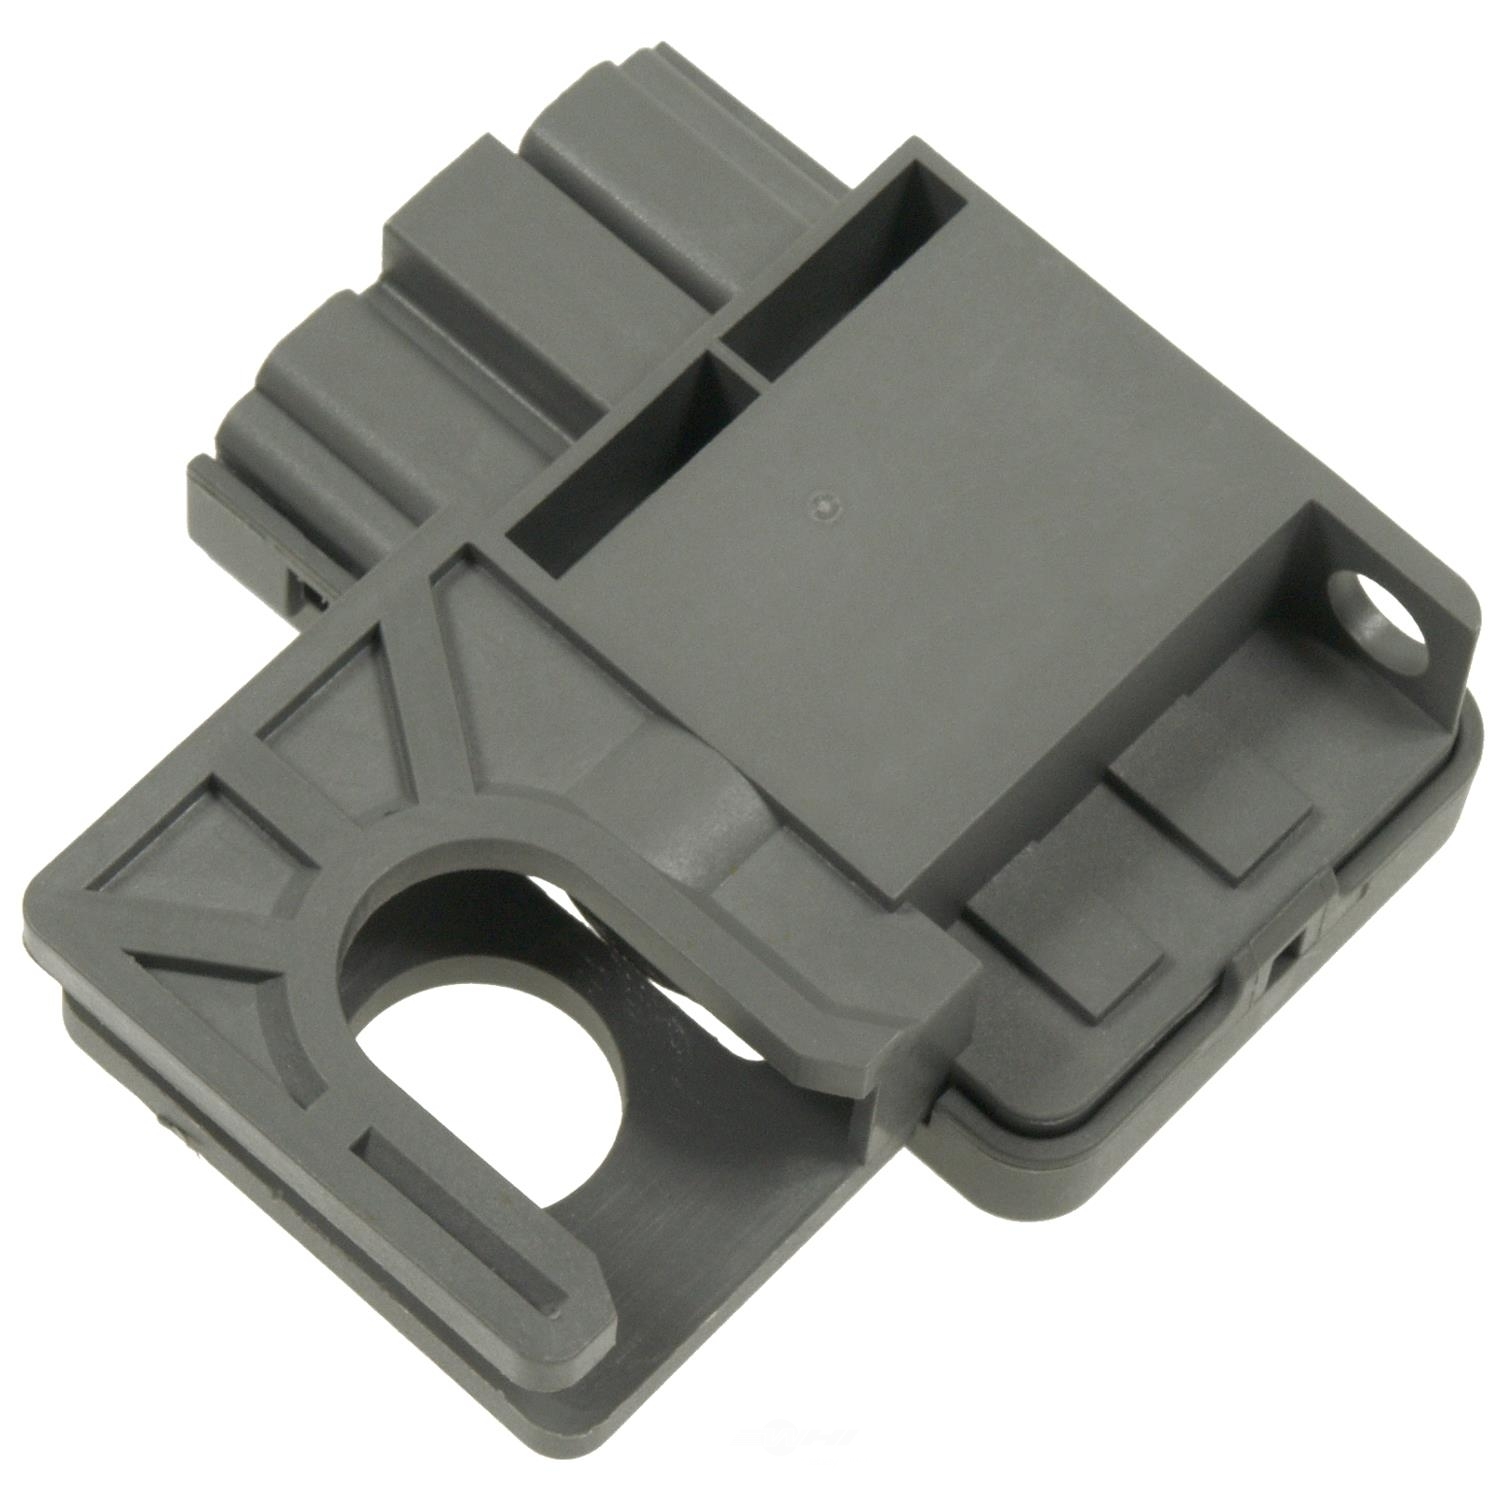 STANDARD T-SERIES - Brake Light Switch - STT SLS247T